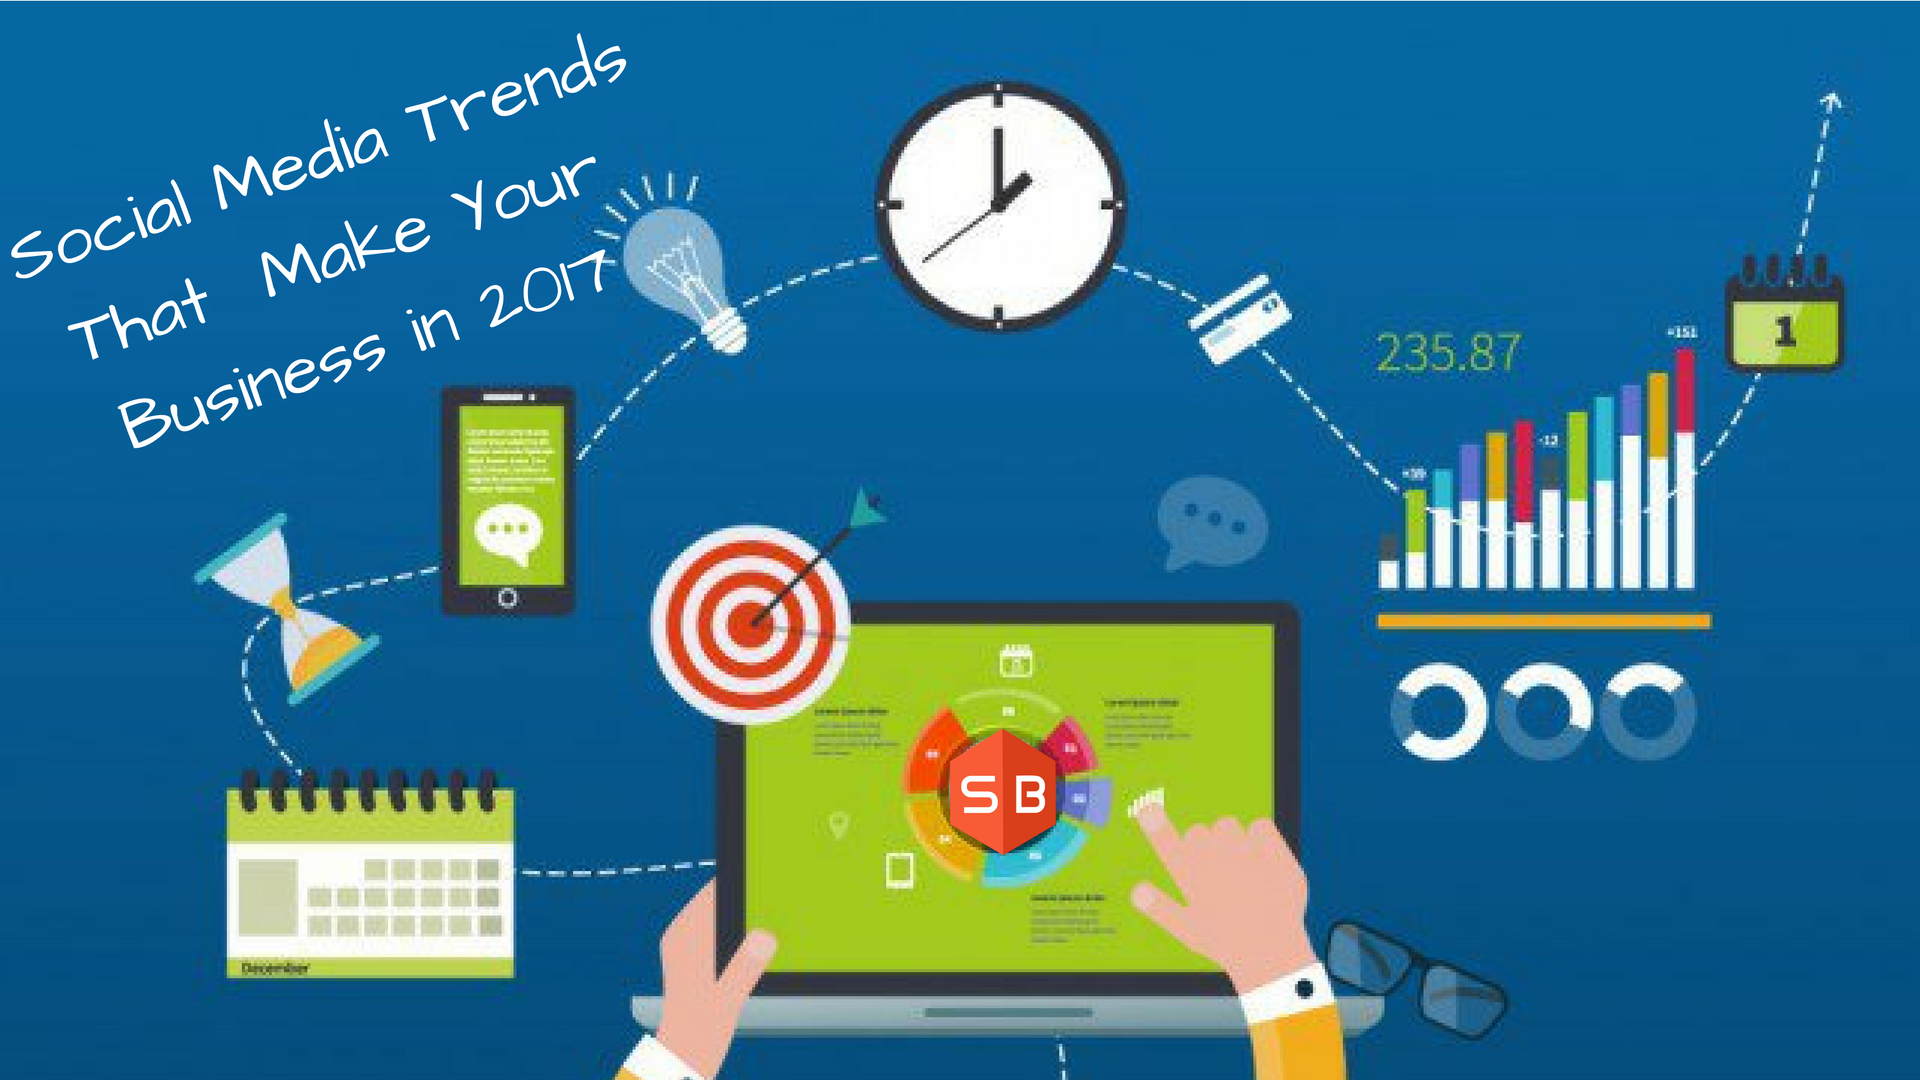 Current Social Media Trends That Could Make Your Business in 2017